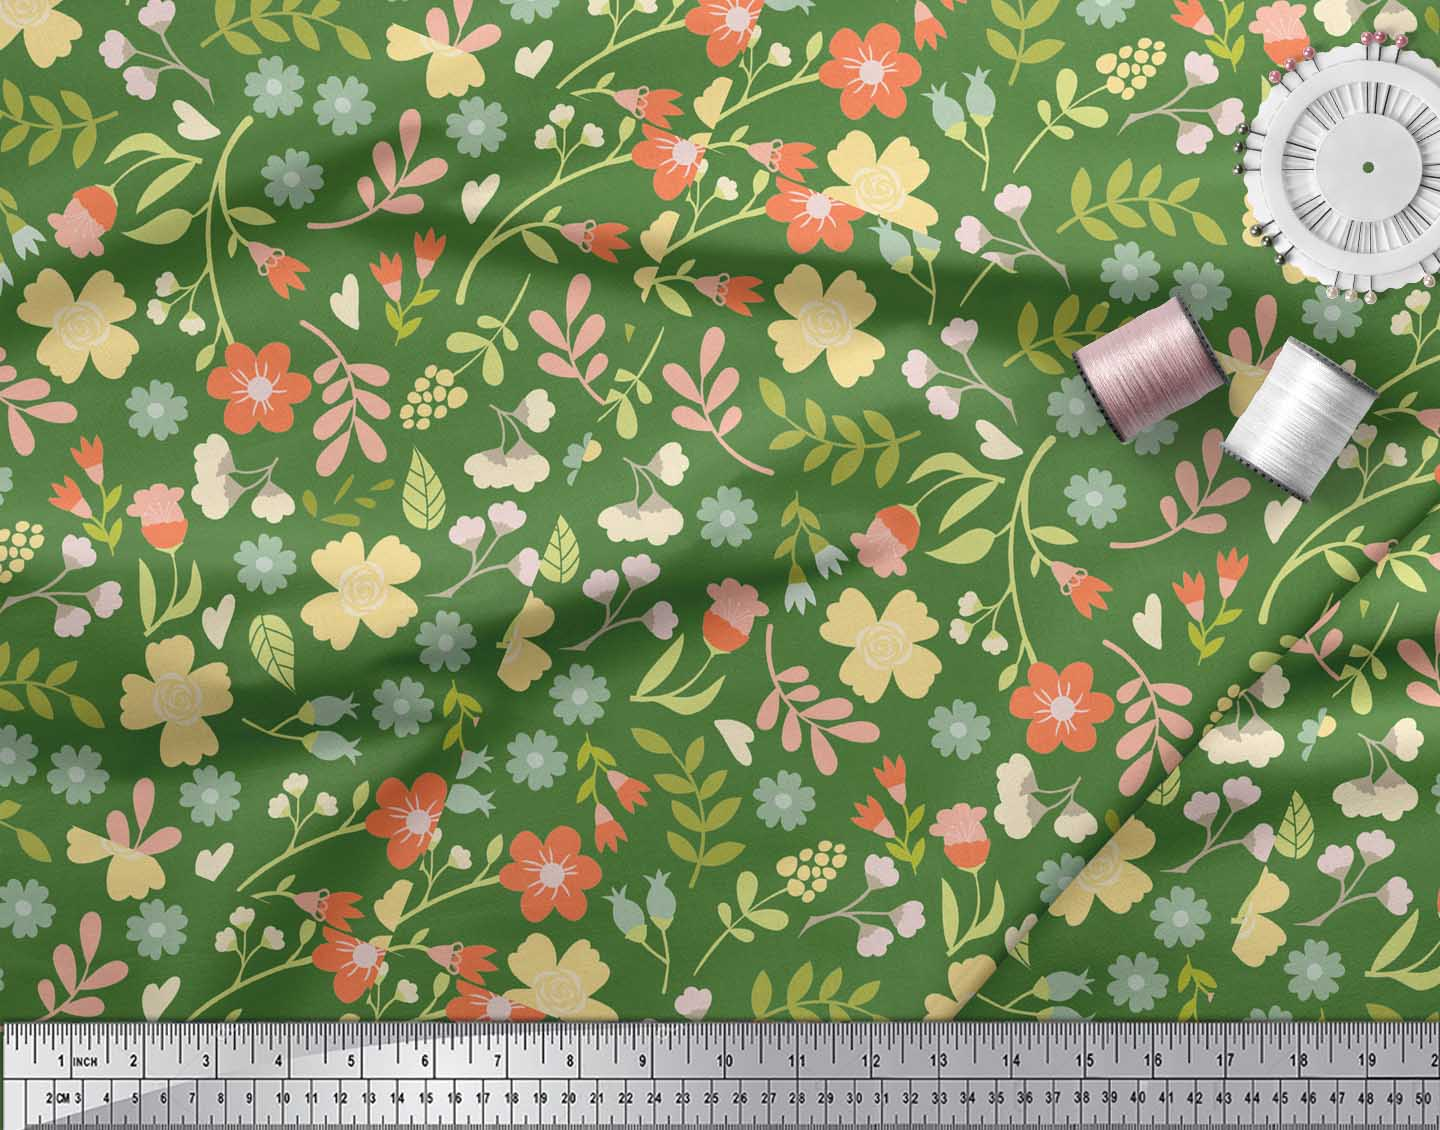 Soimoi-Green-Cotton-Poplin-Fabric-Leaf-Floral-Print-Sewing-Fabric-yOg thumbnail 3